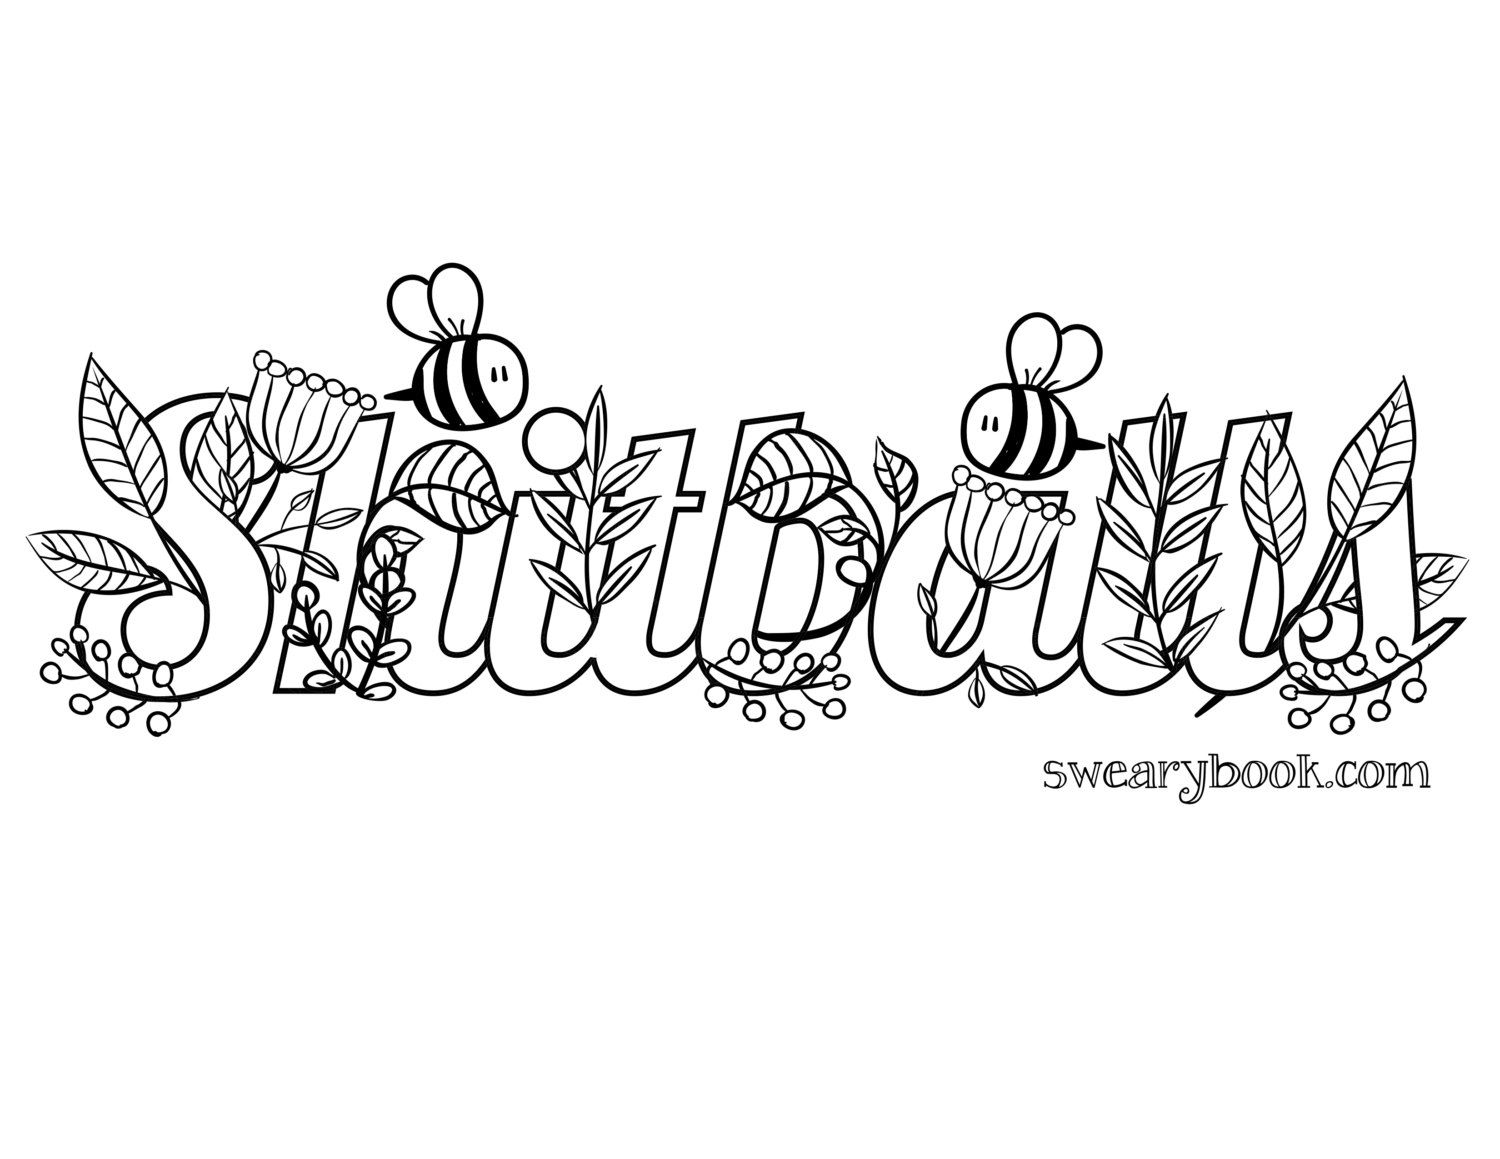 G word coloring pages - Shitballs Swear Words Coloring Page From The Sweary Coloring Book Swearing Colouring Pages For